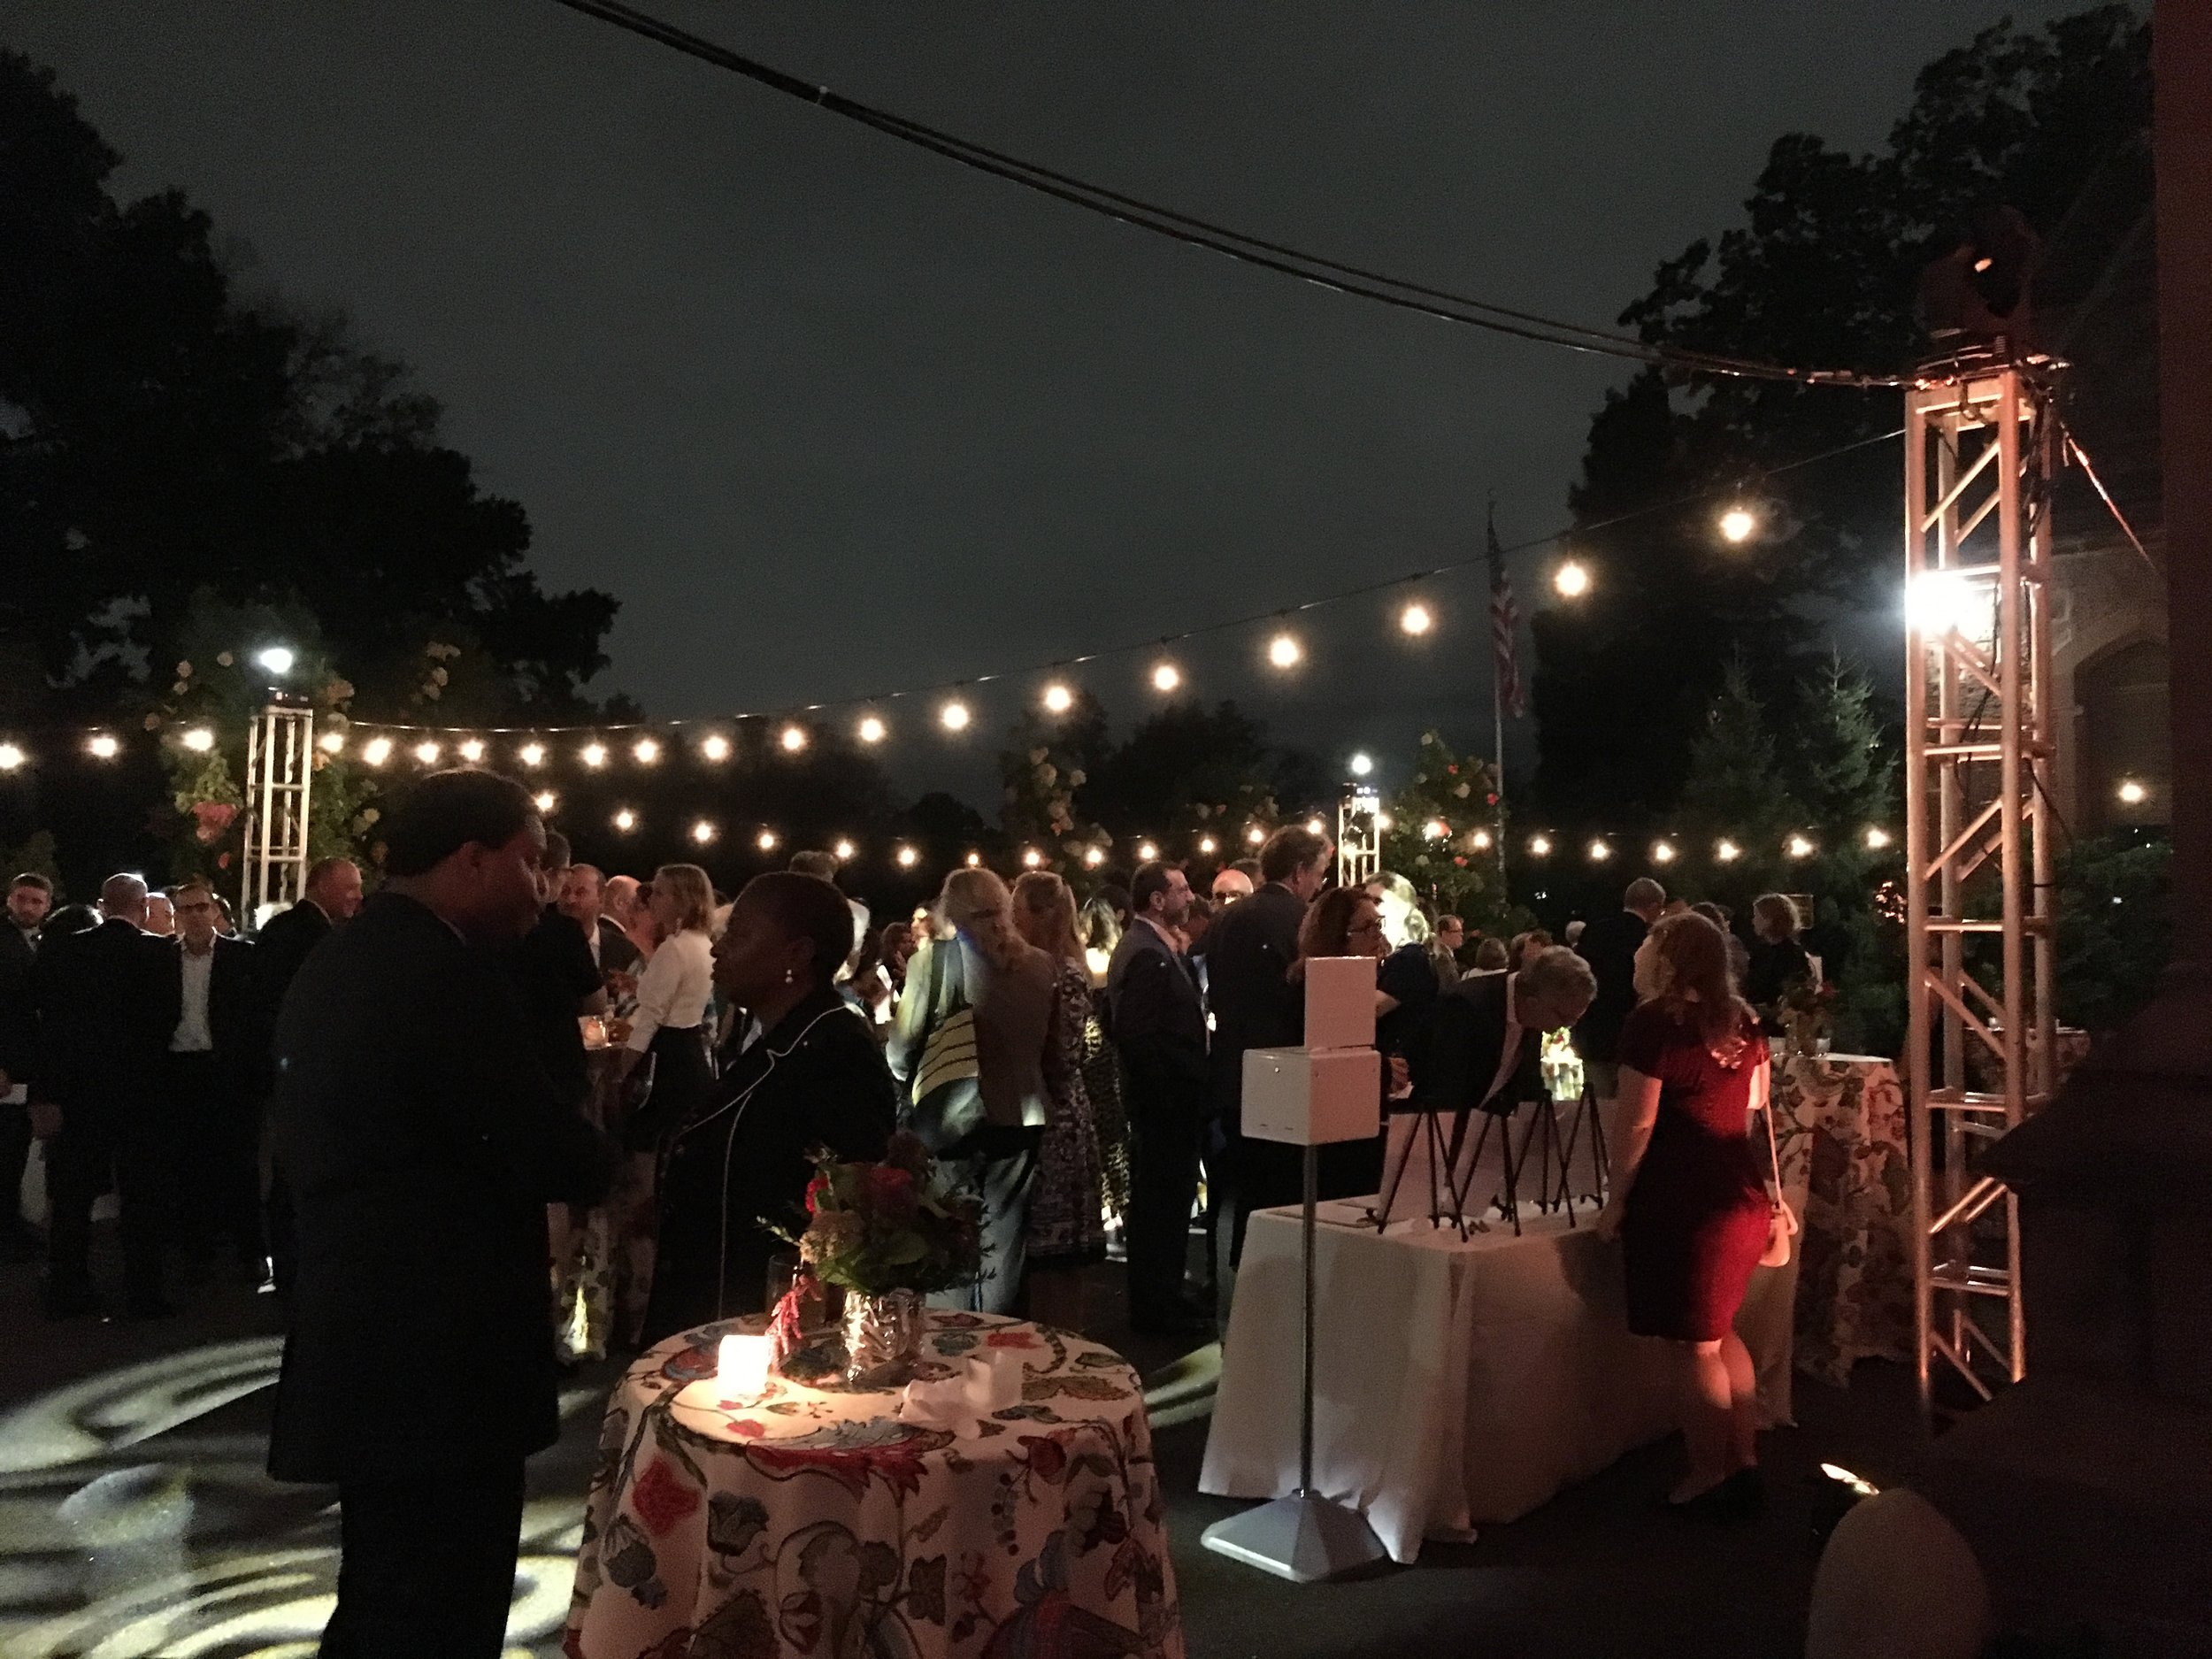 Bistro lighting and moving gobos for an outdoor cocktail event